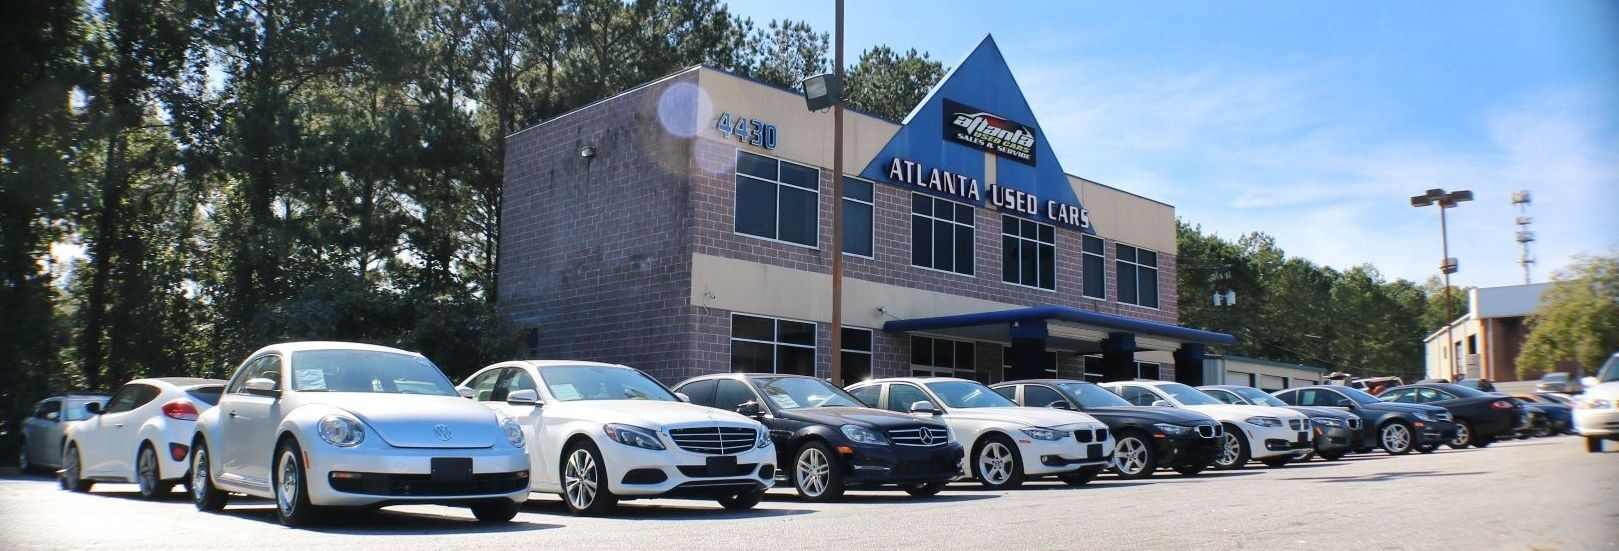 Atlanta Used Cars Sales